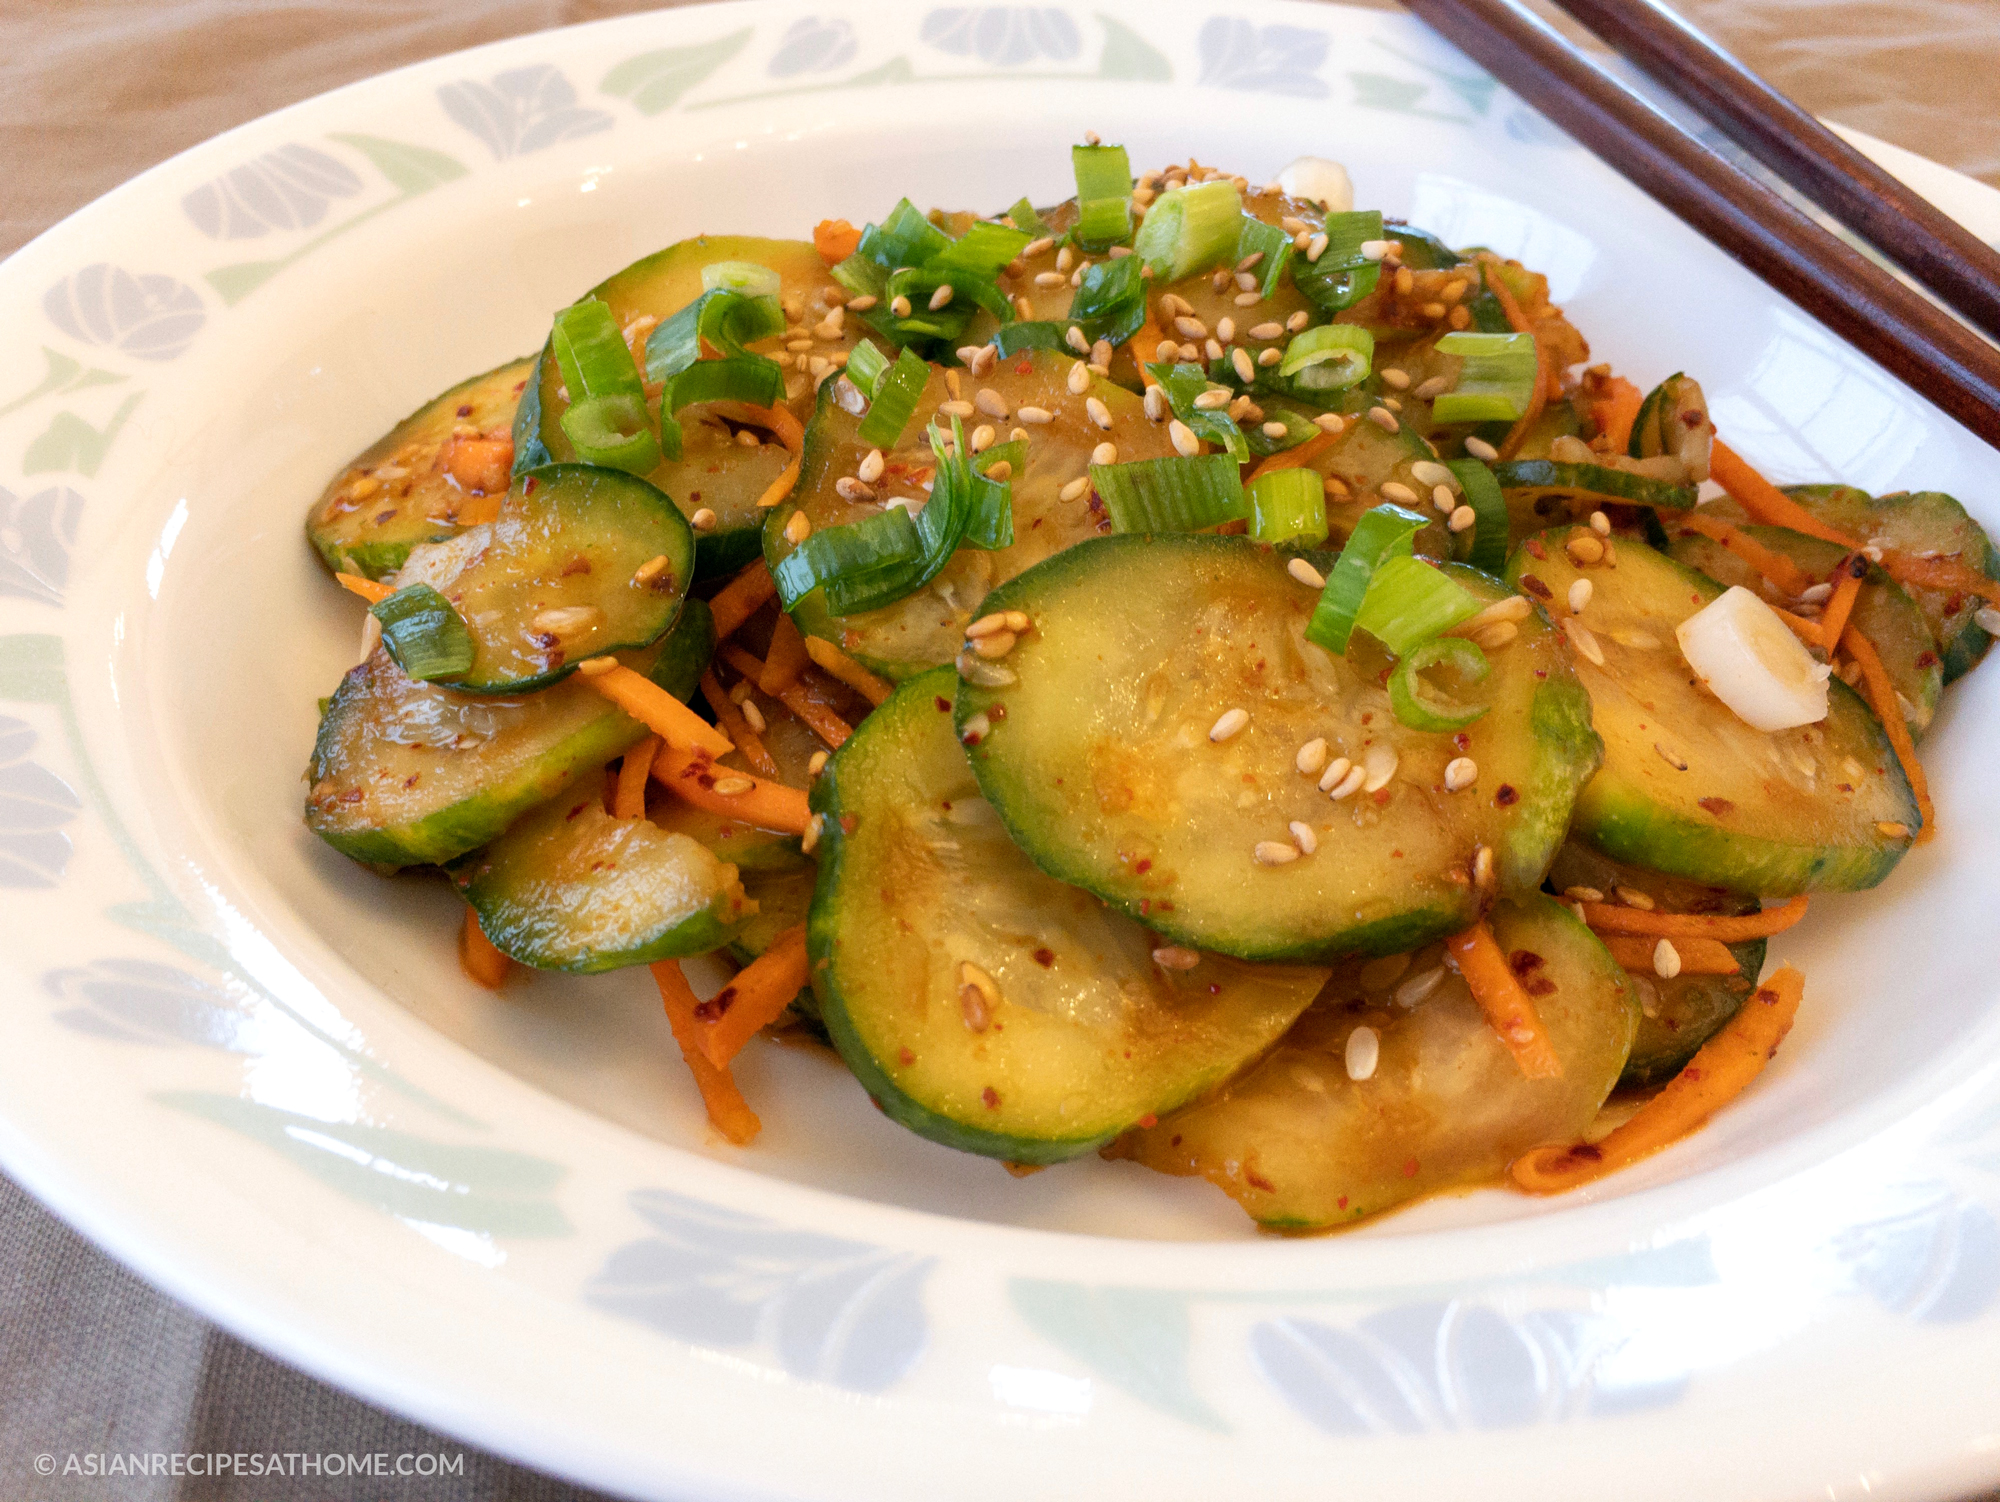 Spicy Korean Cucumber Salad - This fresh, simple and delicious spicy Korean cucumber salad is so easy to make, and just happens to be gluten-free, vegetarian, soy-free and vegan recipe from AsianRecipesAtHome.com.